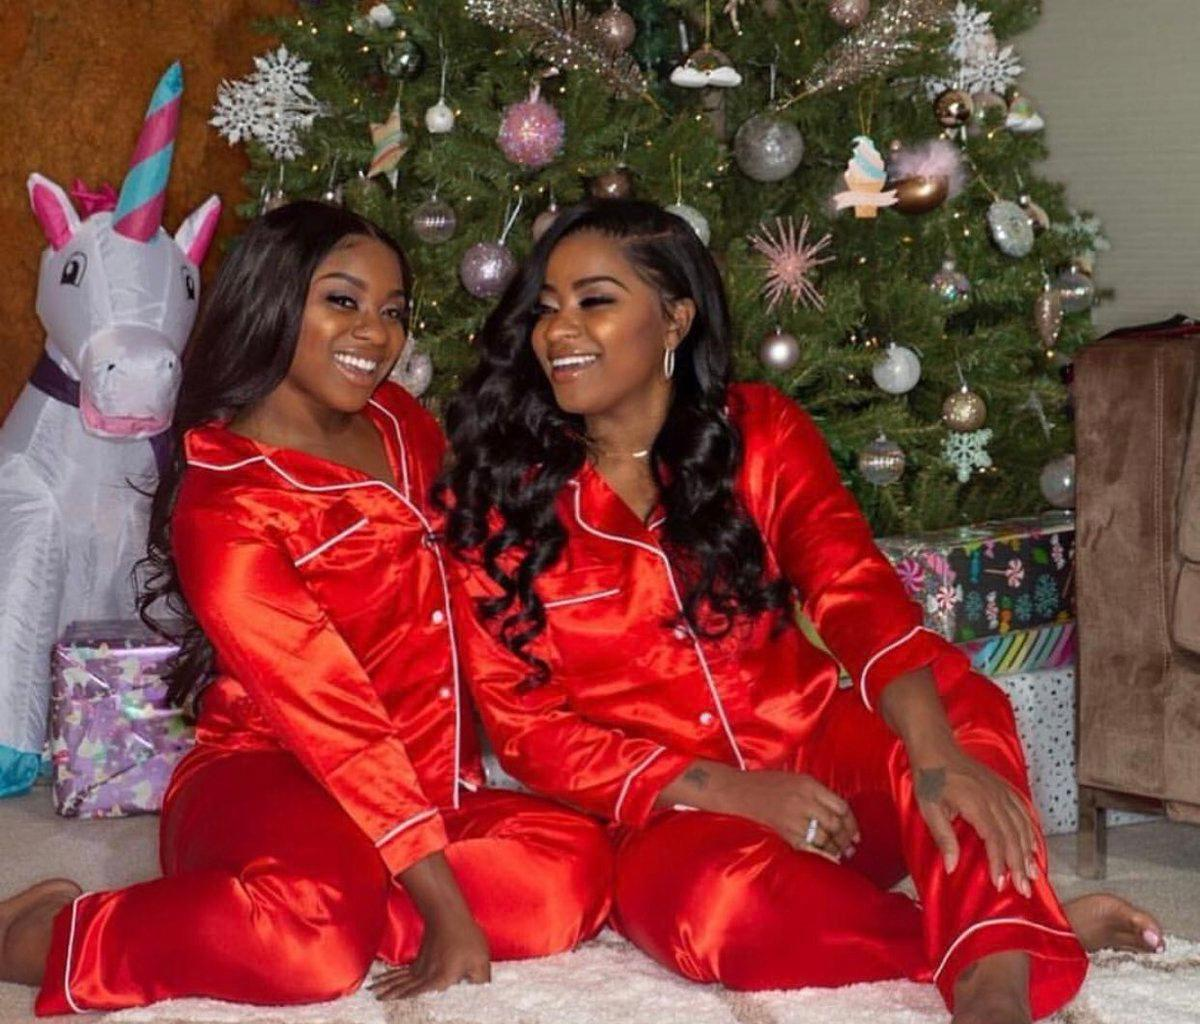 Toya Johnson Is Shining With Her Daughter, Reginae Carter In This Christmas Photo